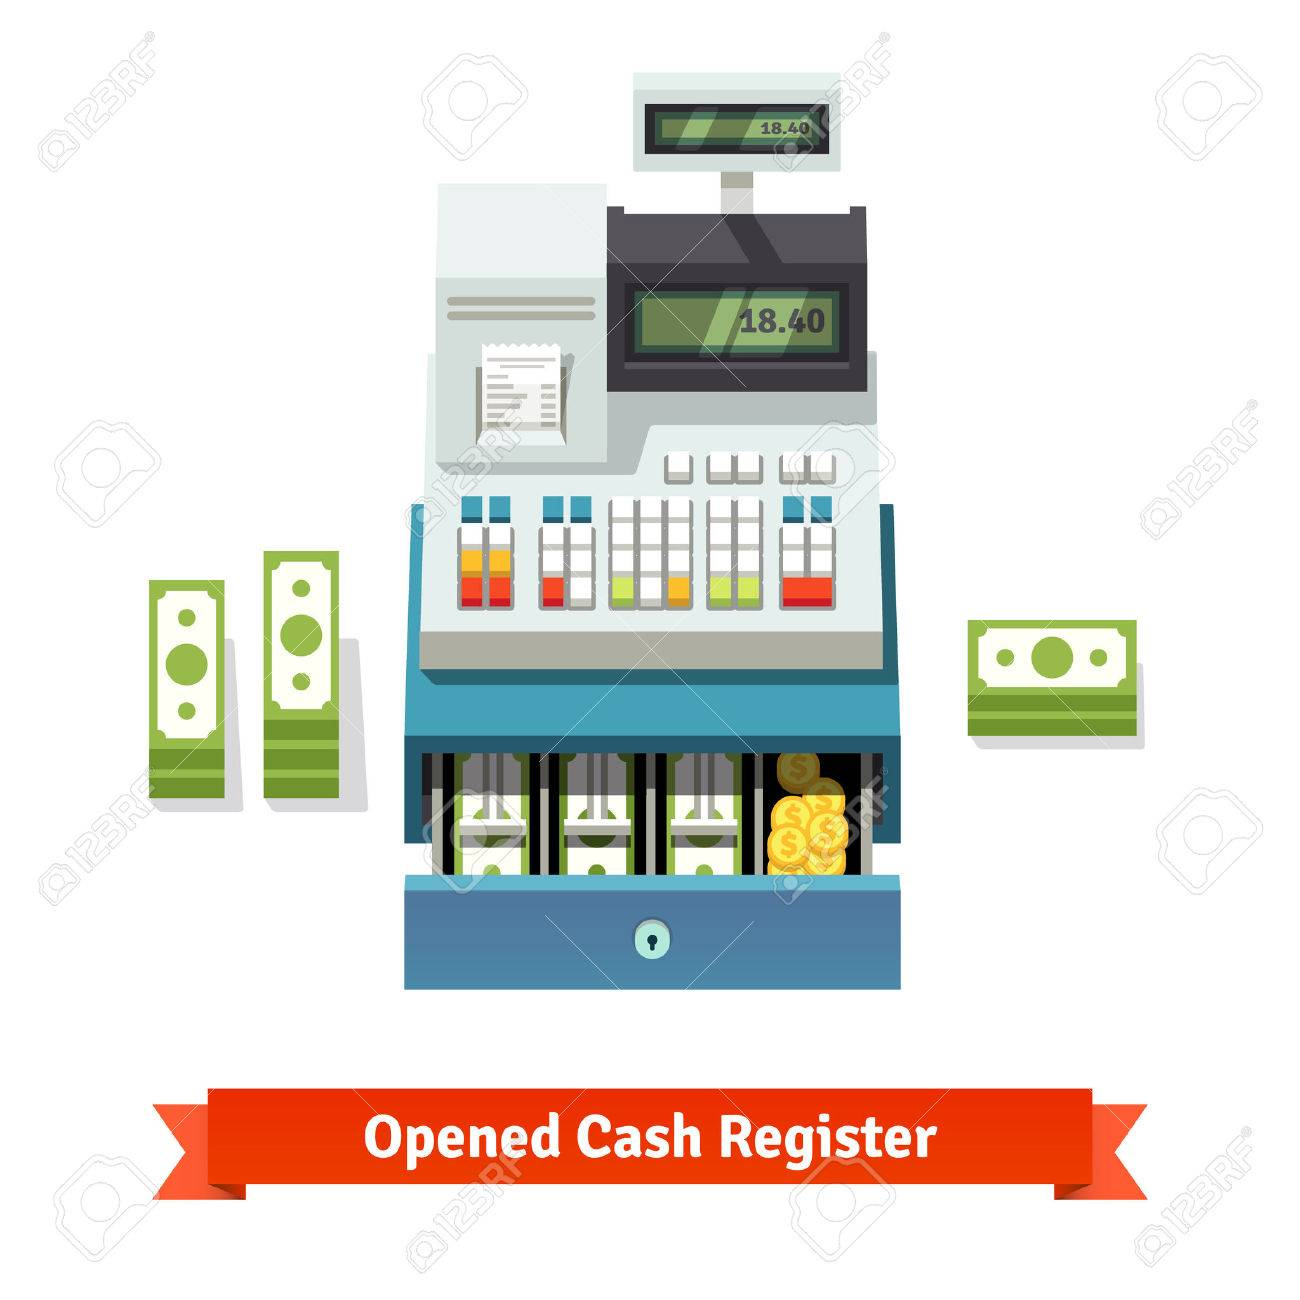 Opened cash register with printed receipt, paper money stacks and coins inside the box. Flat style vector illustration isolated on white background. - 47493671